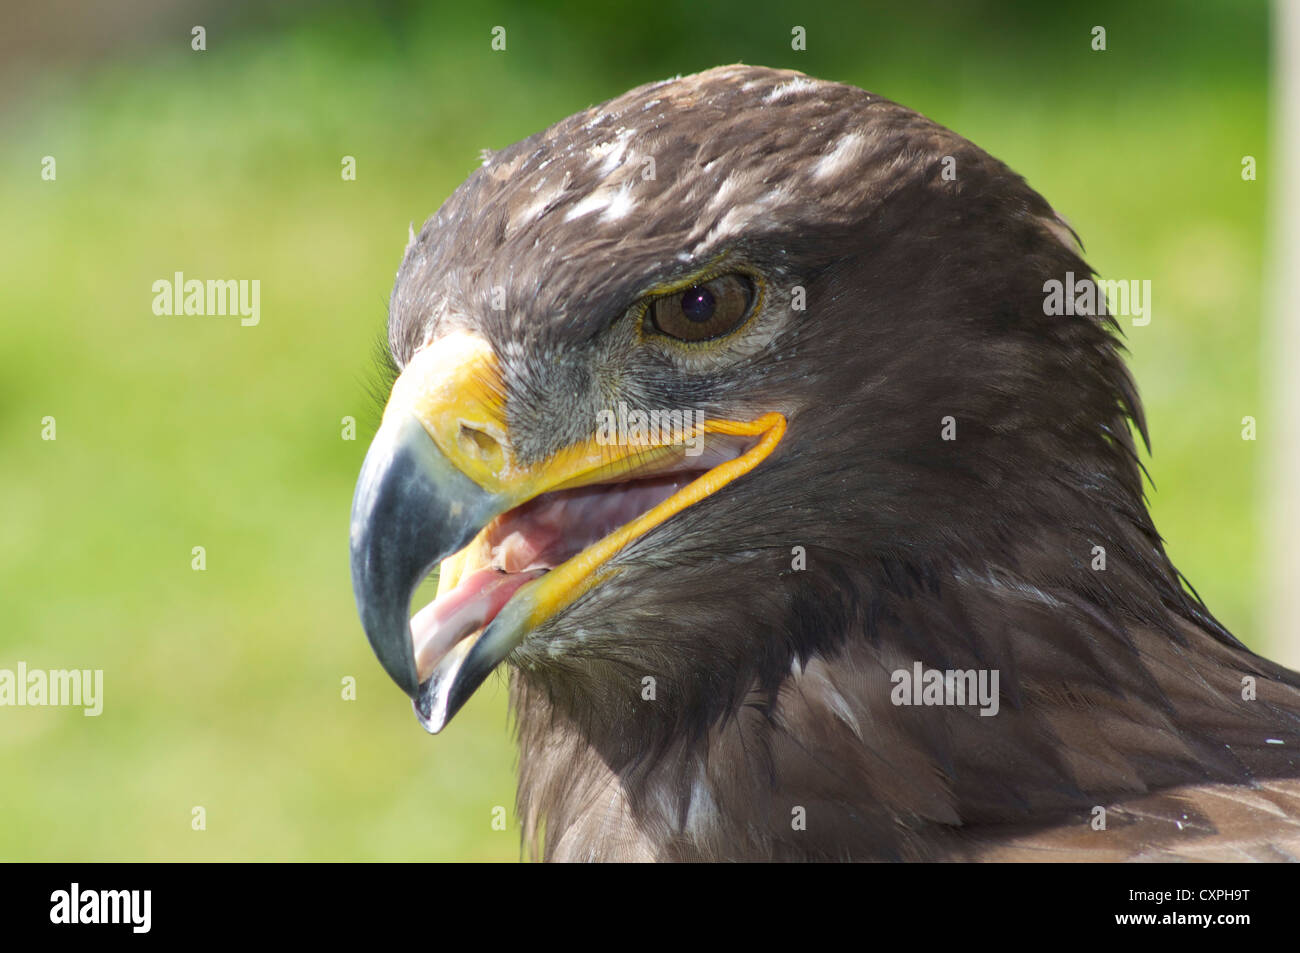 golden eagle with tongue showing at the english of falconry